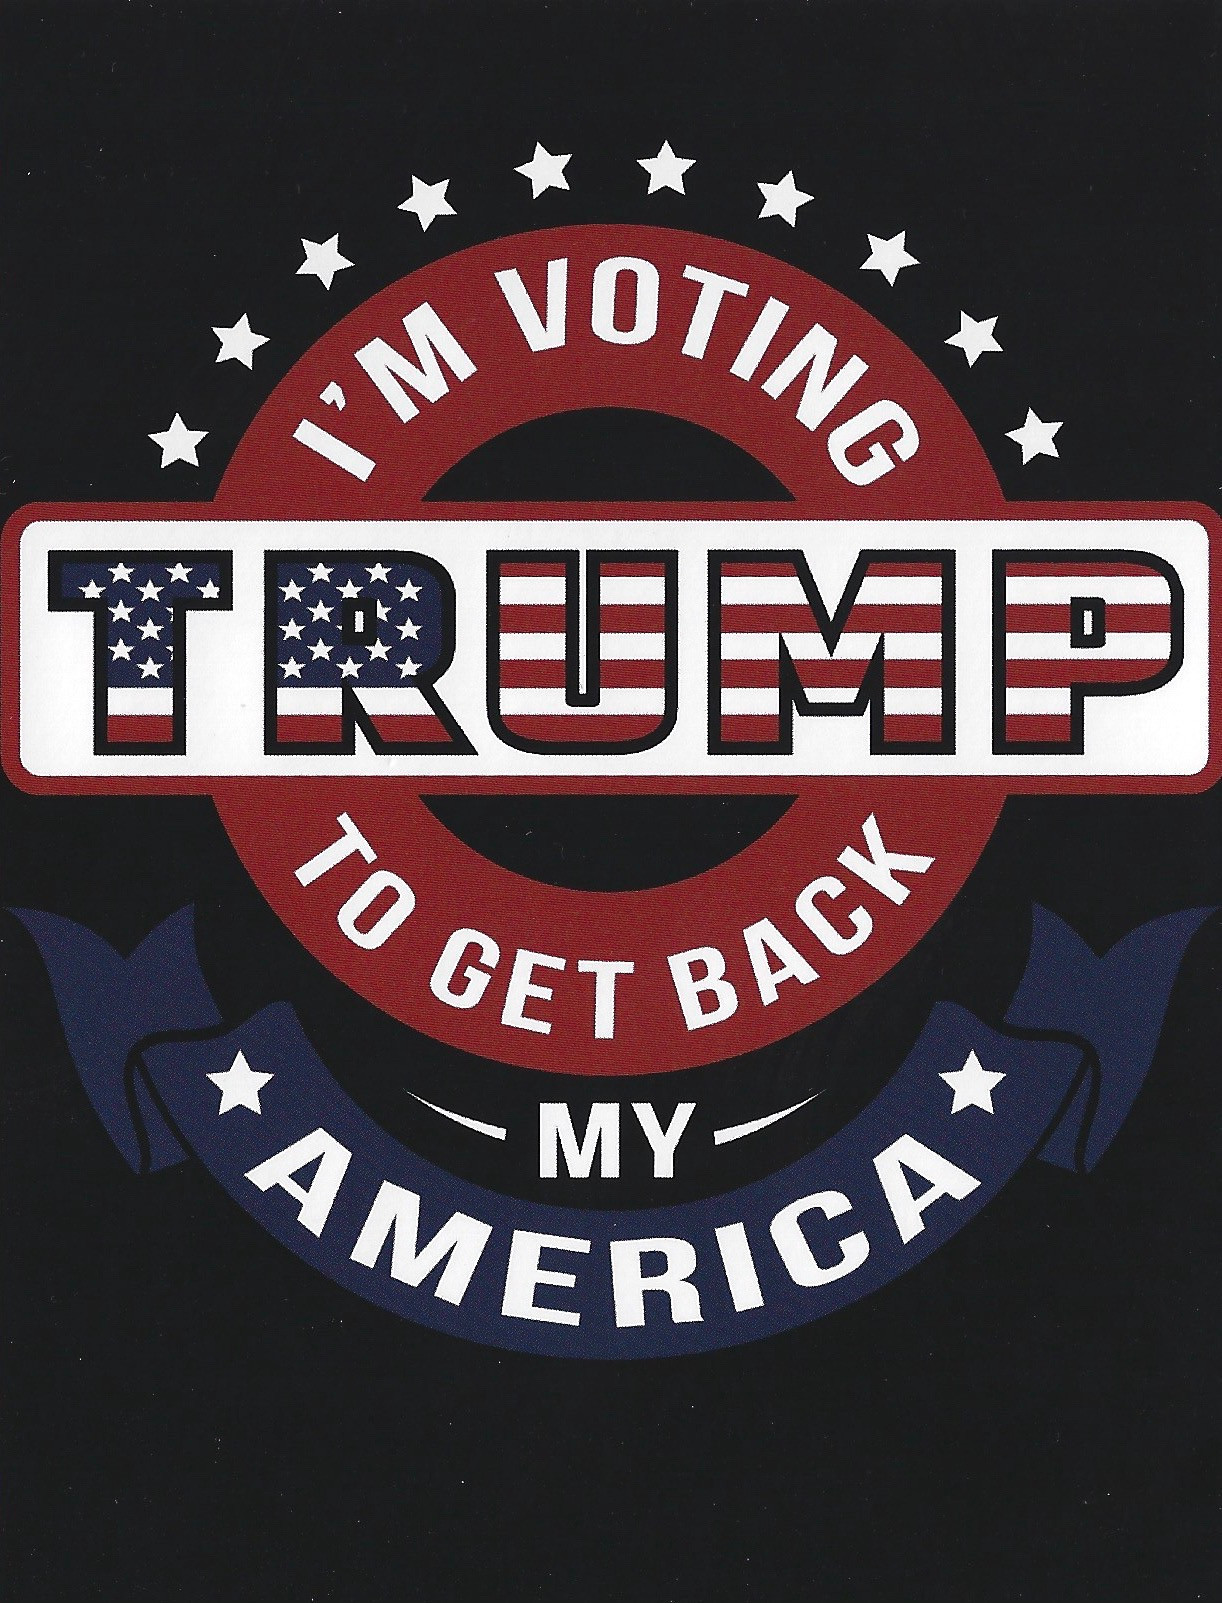 I'm Voting Trump to Get Back my America